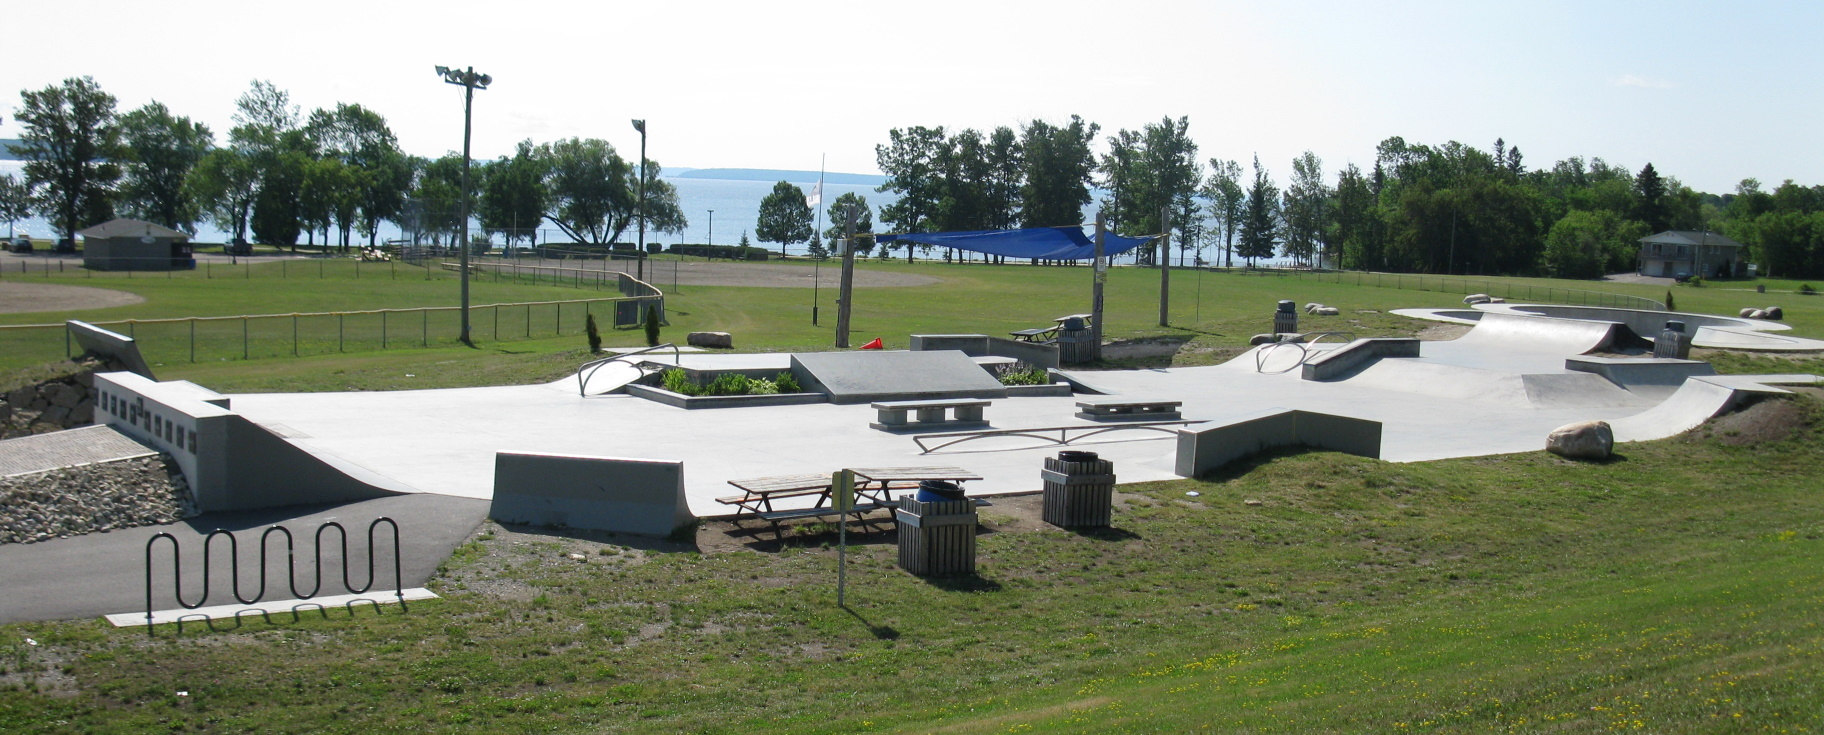 Empty skatepark overlooking the lake